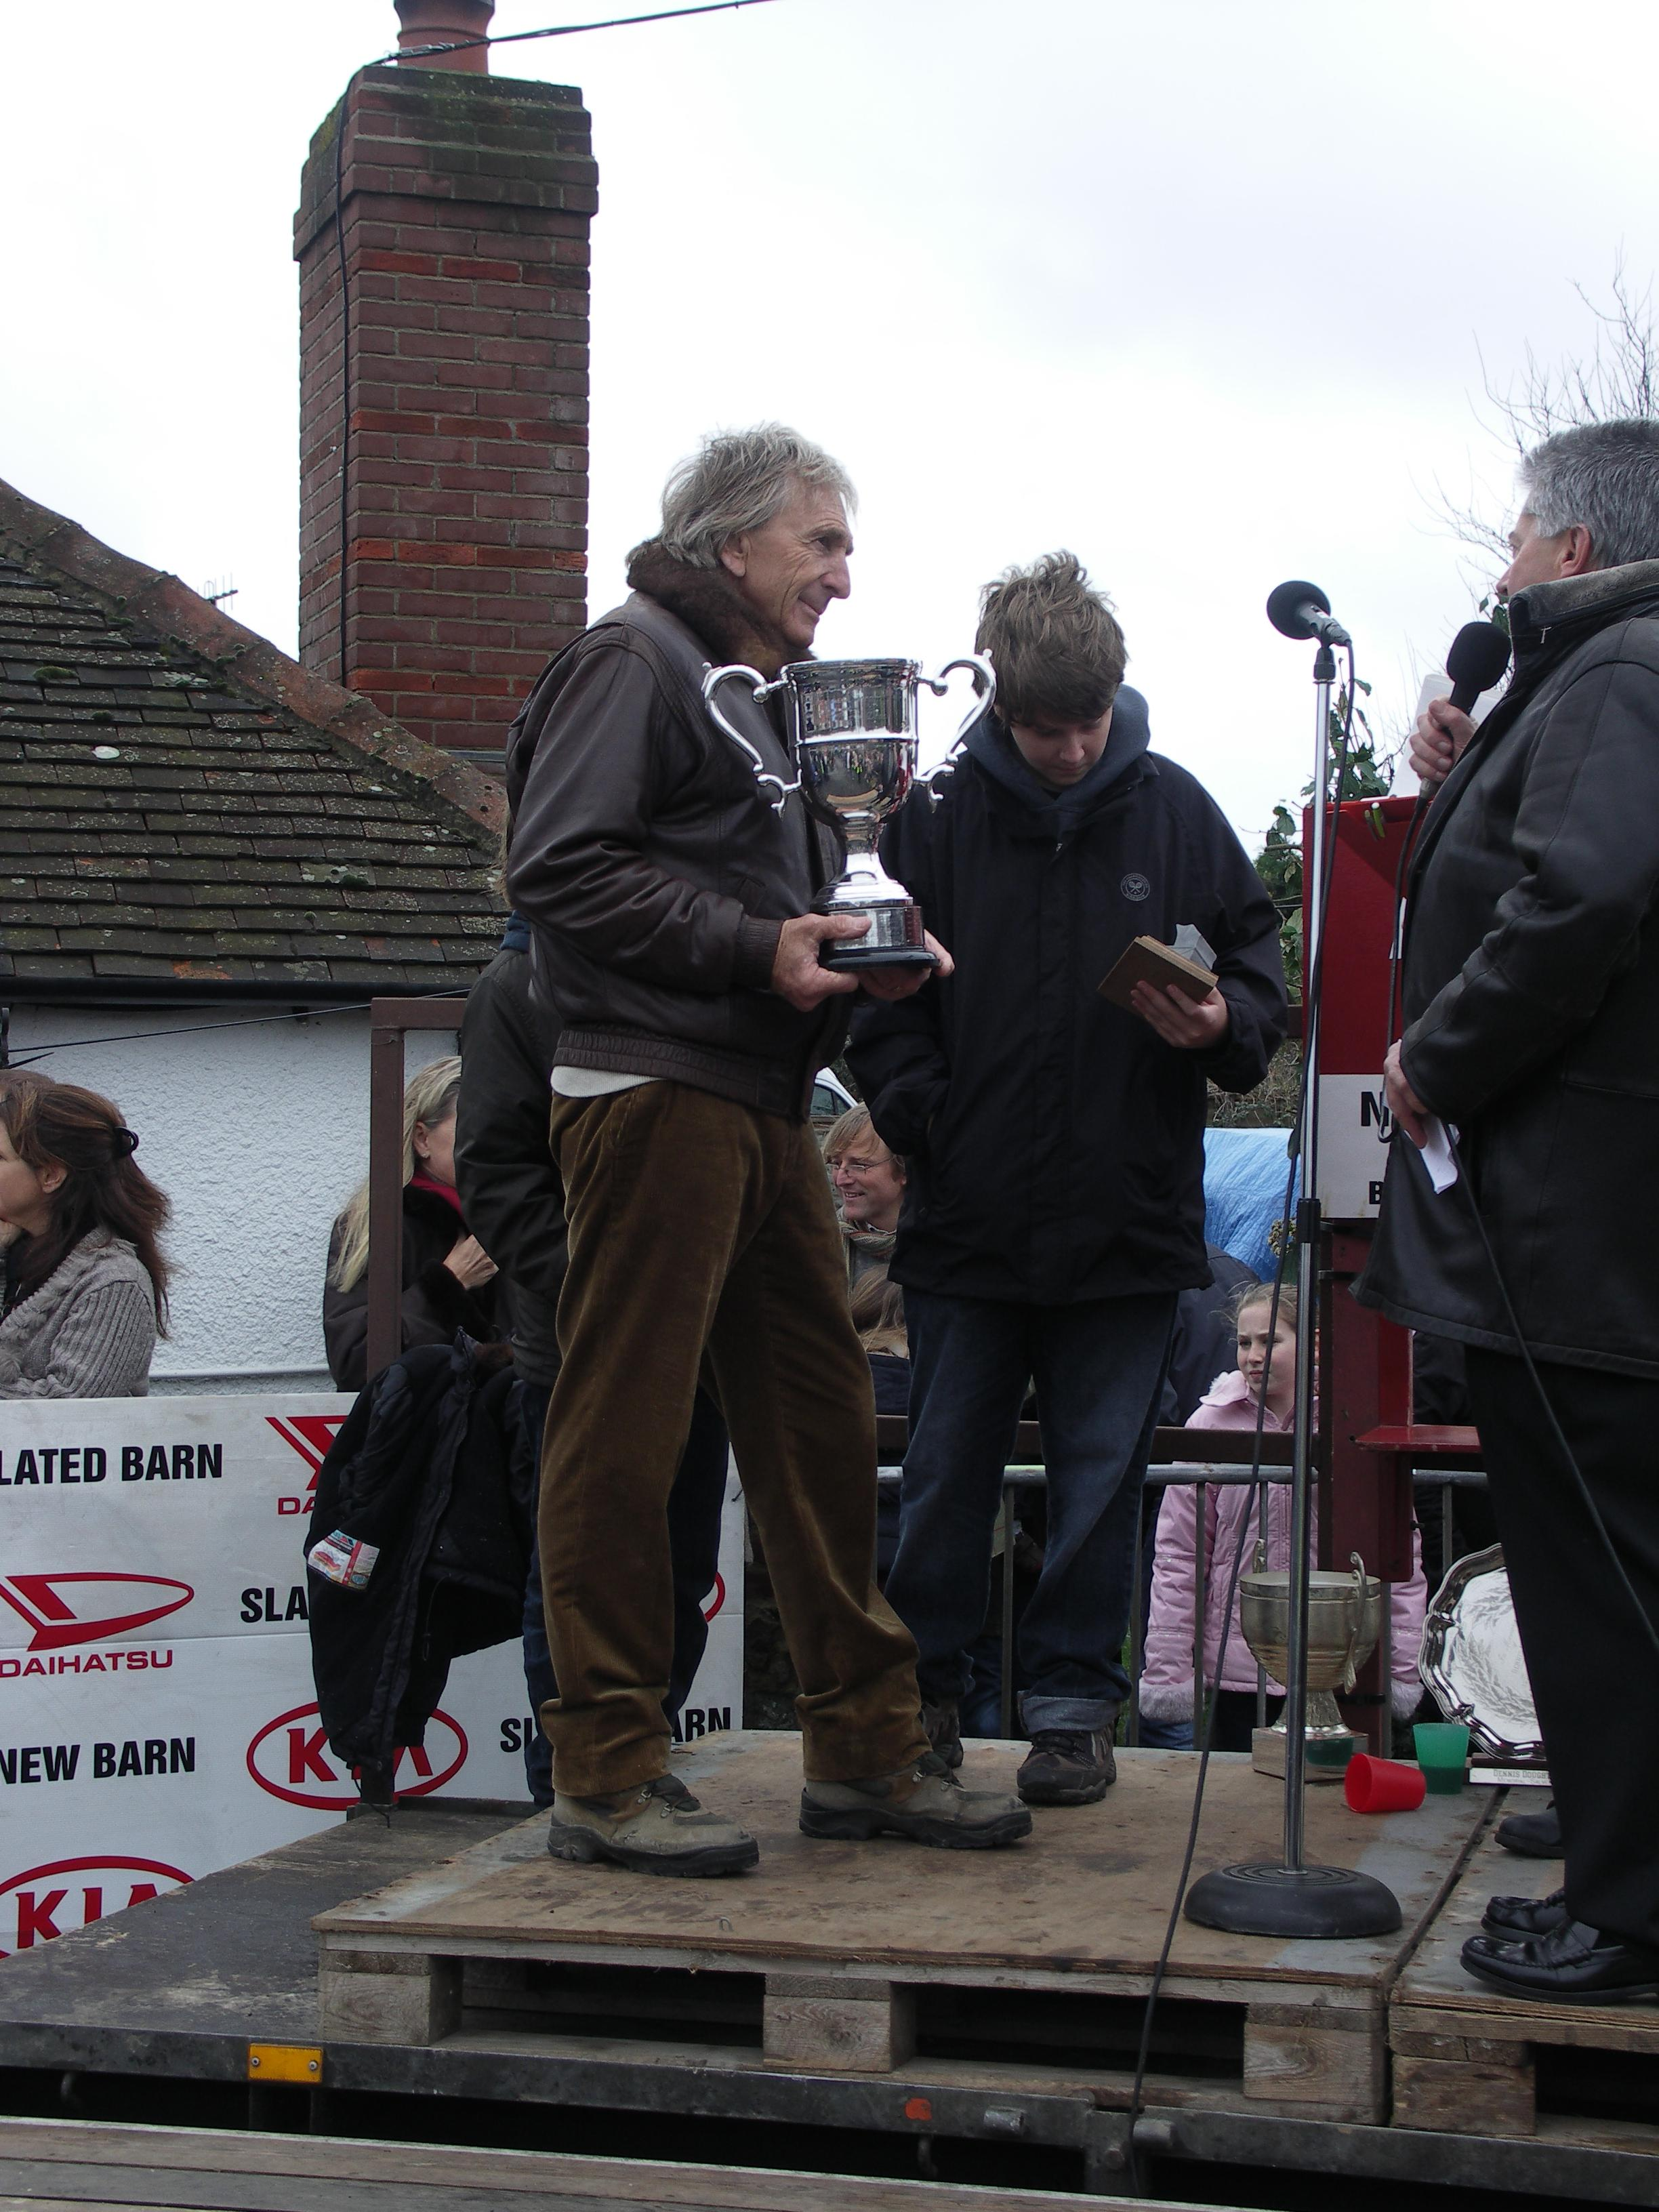 http://www.paghampramrace.com/wp-content/uploads/2018/04/PICT0093.jpg